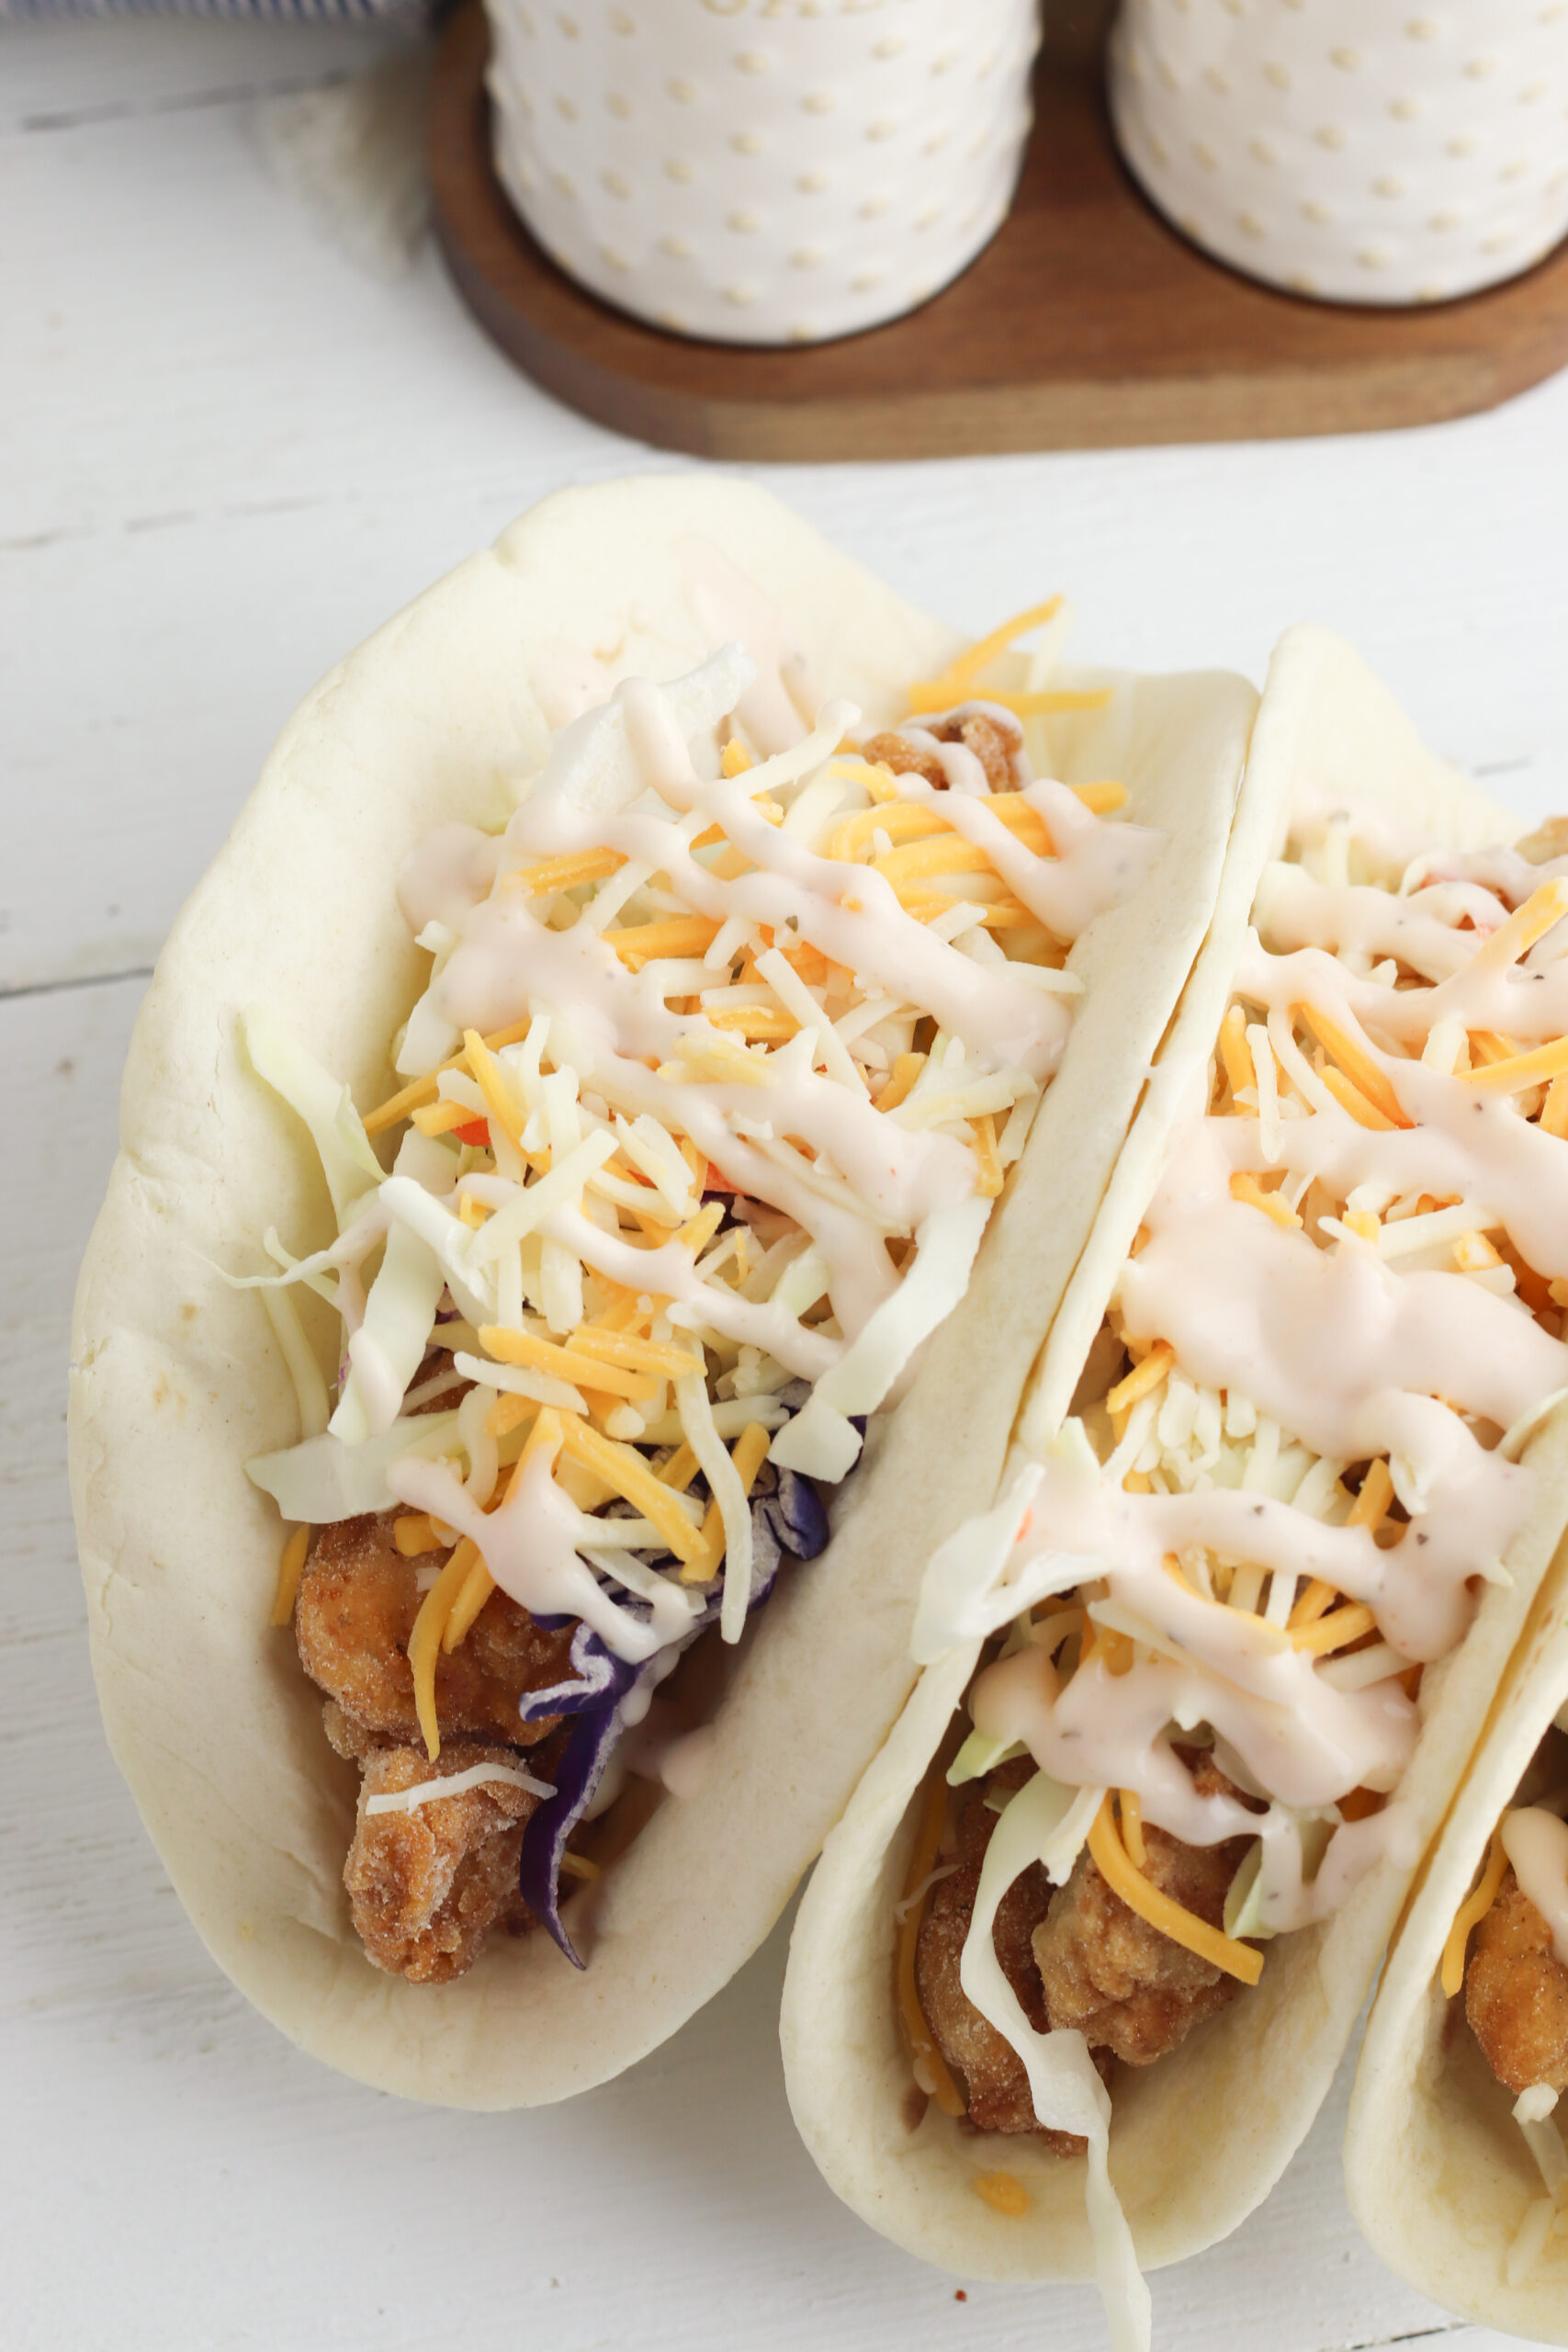 Southern Fried Chicken Tacos being served for dinner.